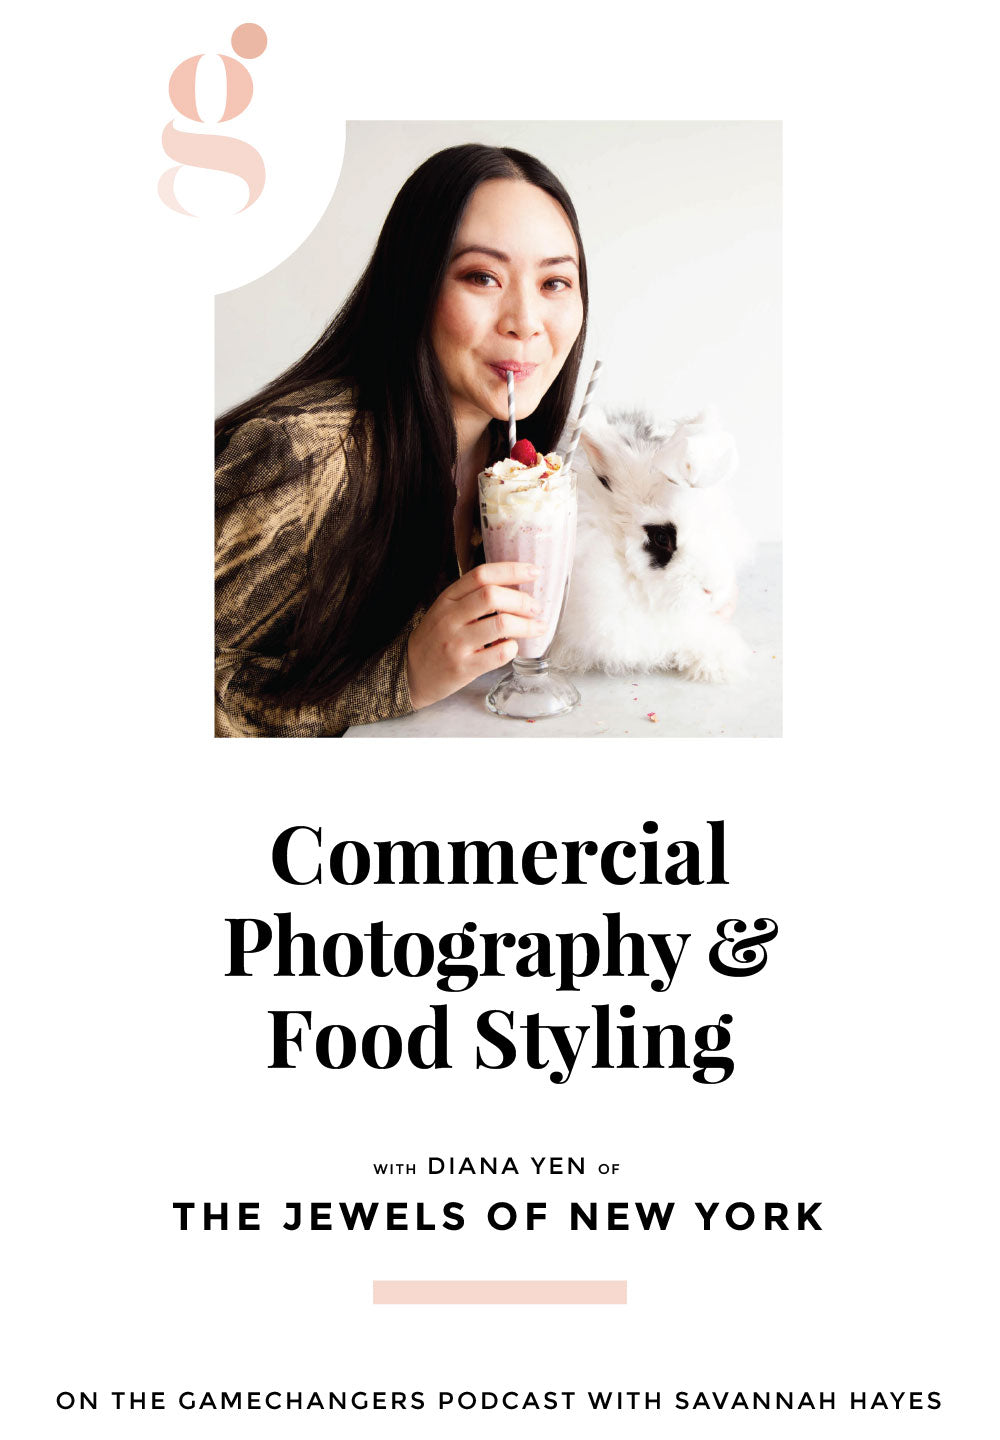 The Gamechangers Podcast with Diana Yen of Jewels of New York